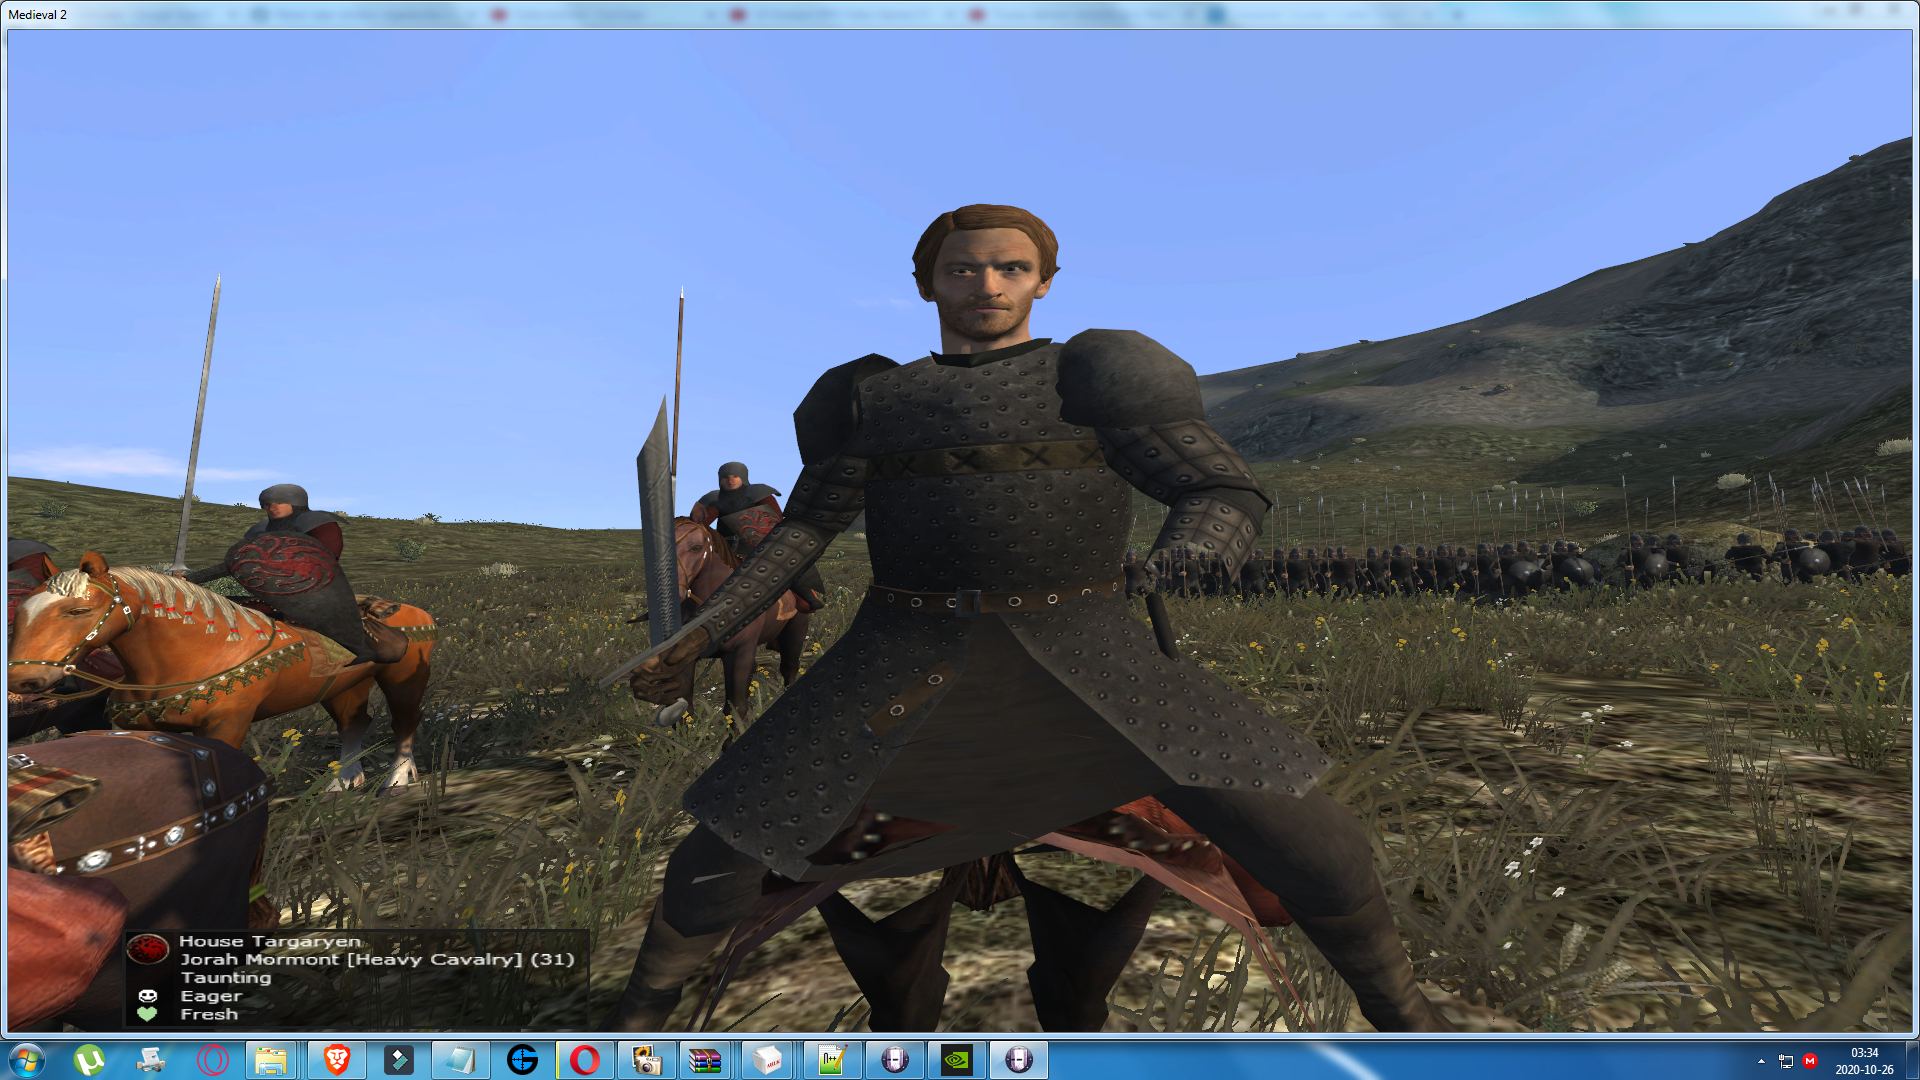 Sir Jorah Mormont has been added as a new hero to the mod!